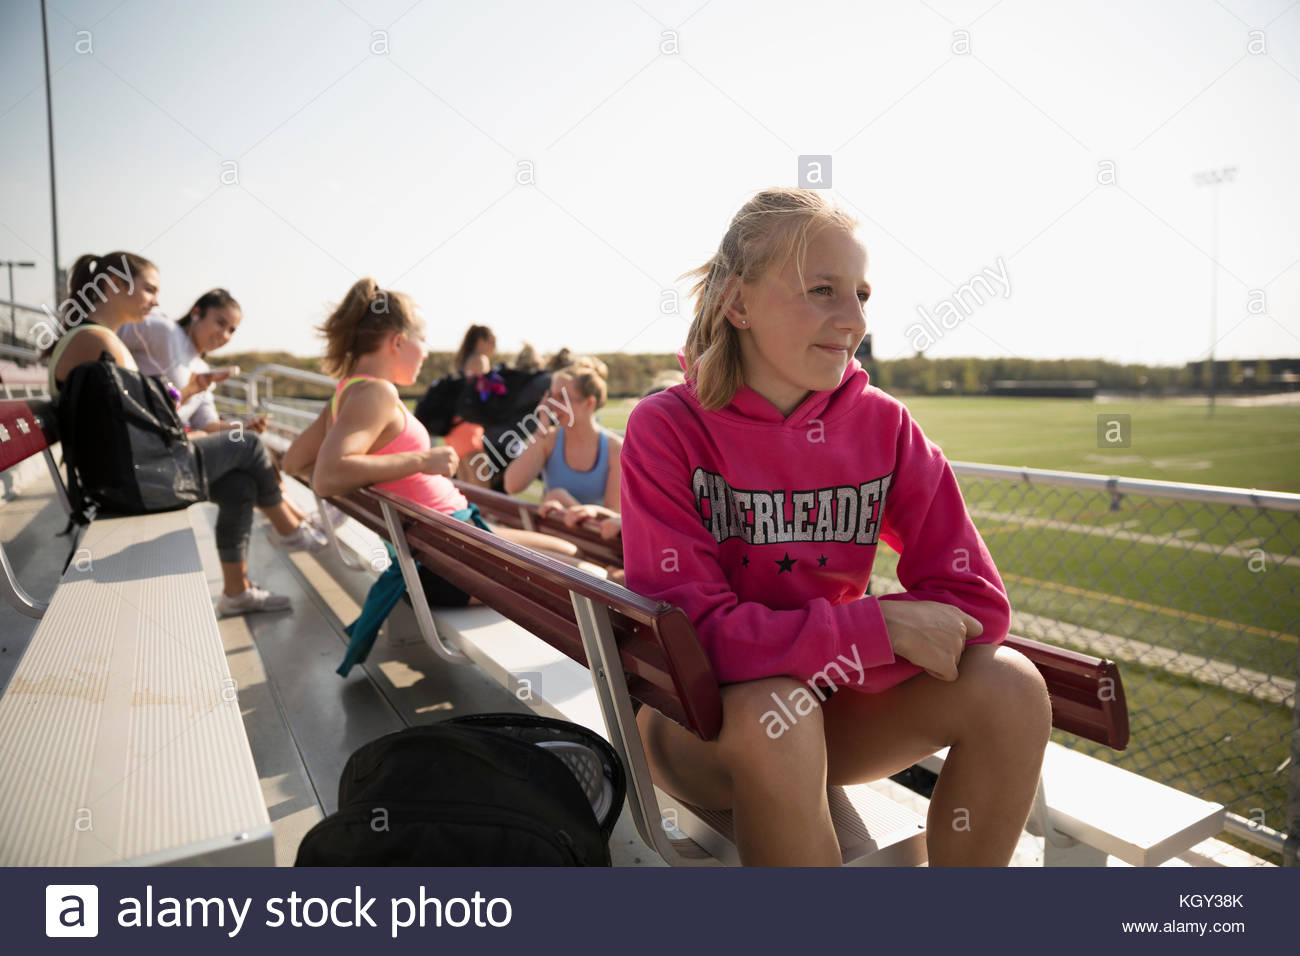 Teenage girl high school cheerleader sitting and looking away on sunny bleachers - Stock Image